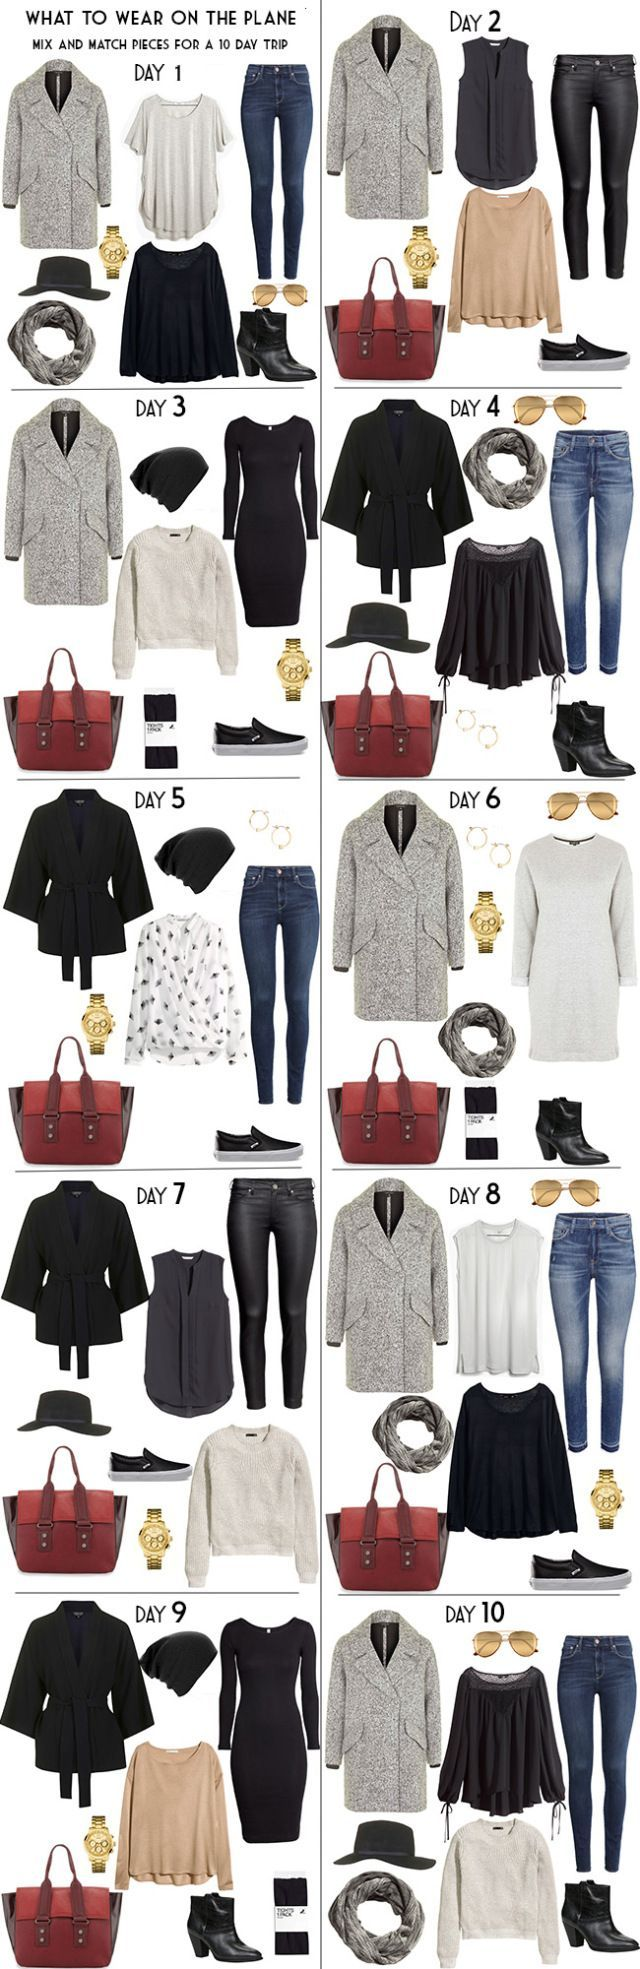 Packing Light Days In New Zealand Outfit Options Clothes - 10 day weather ny